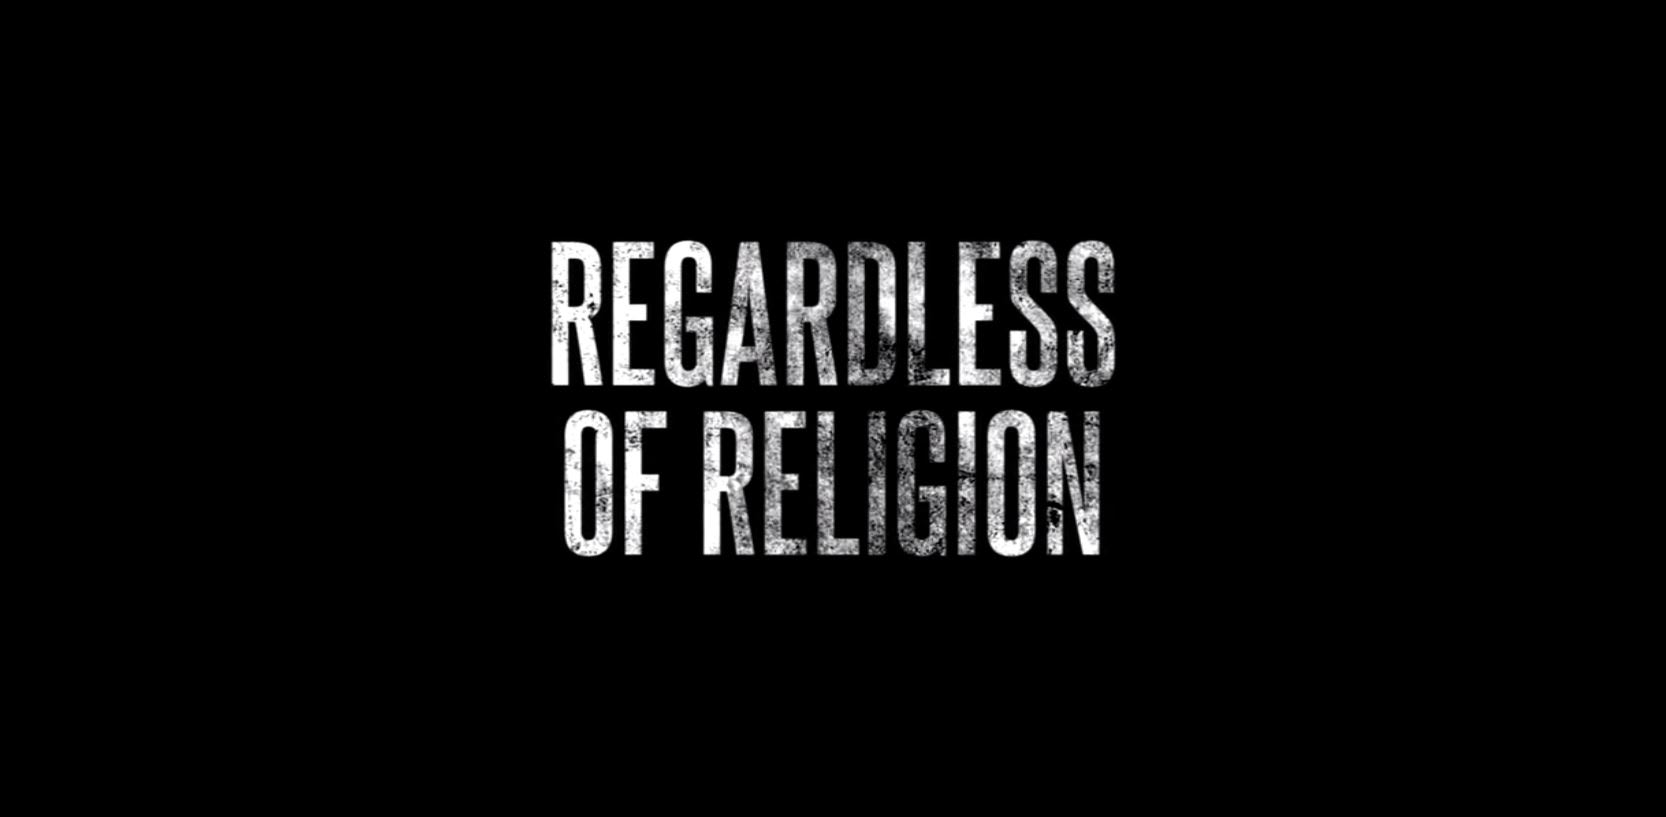 Regardless Of Religion Teaser 1